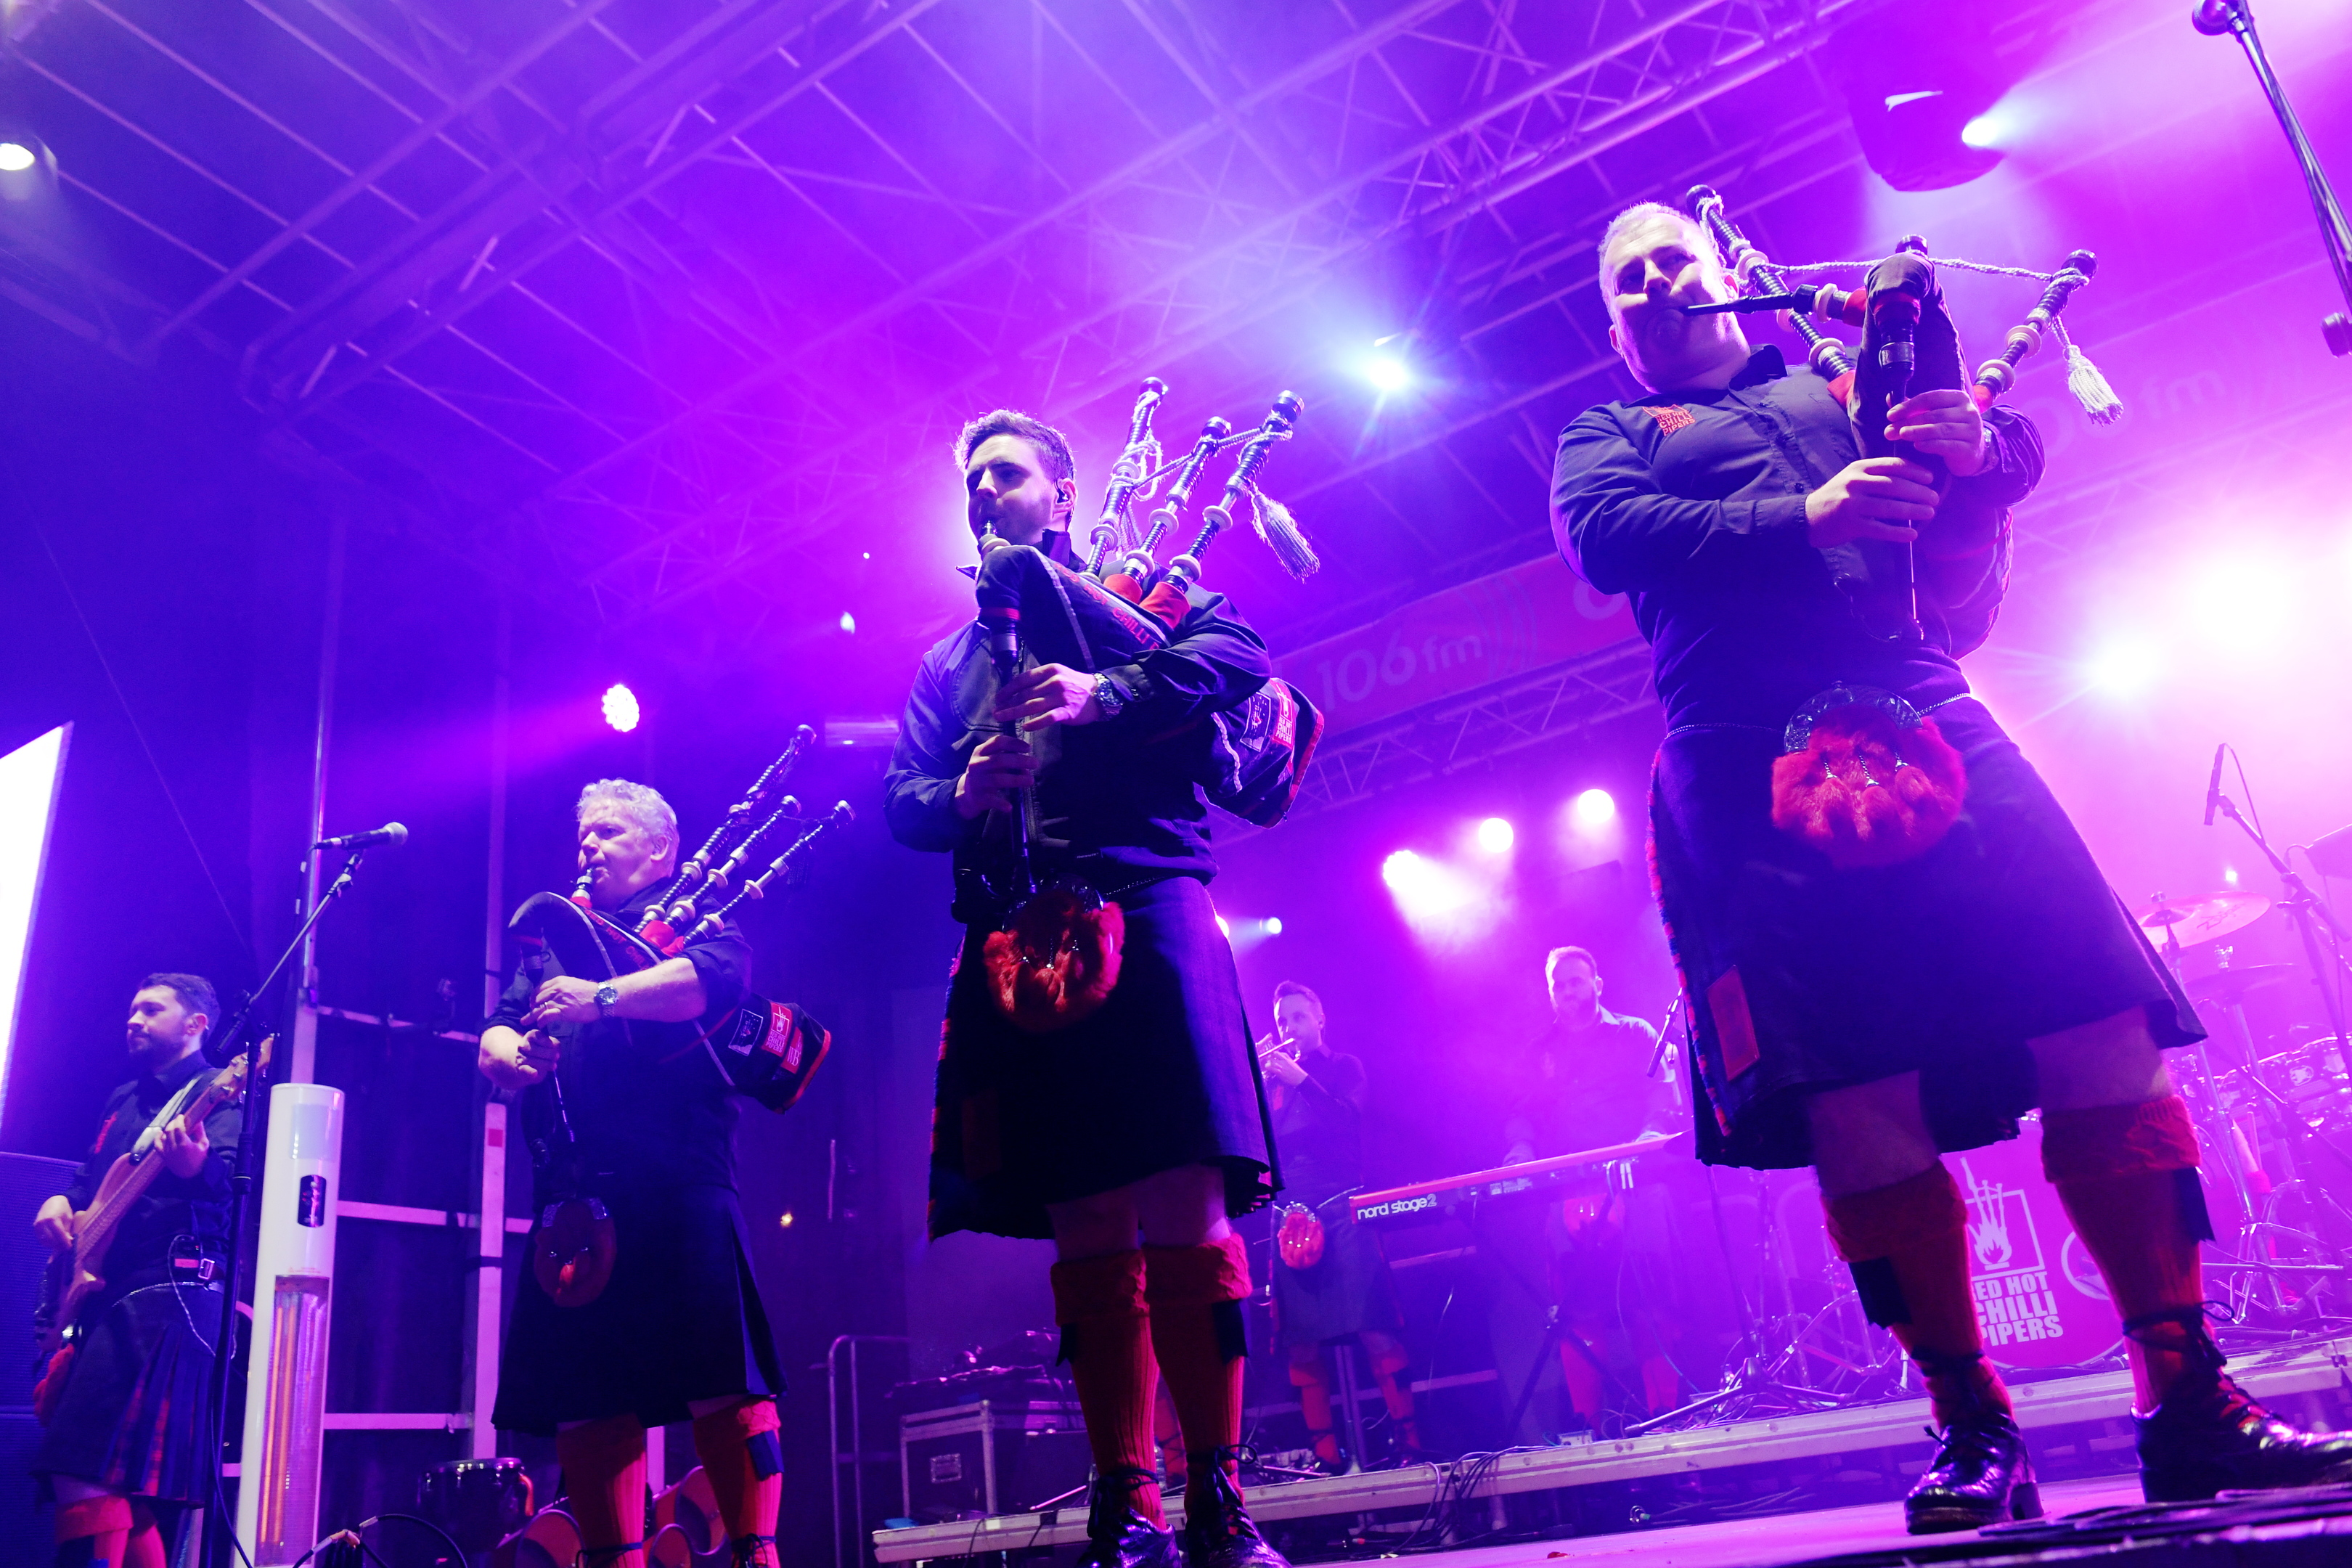 The Red Hot Chilli Pipers perform.